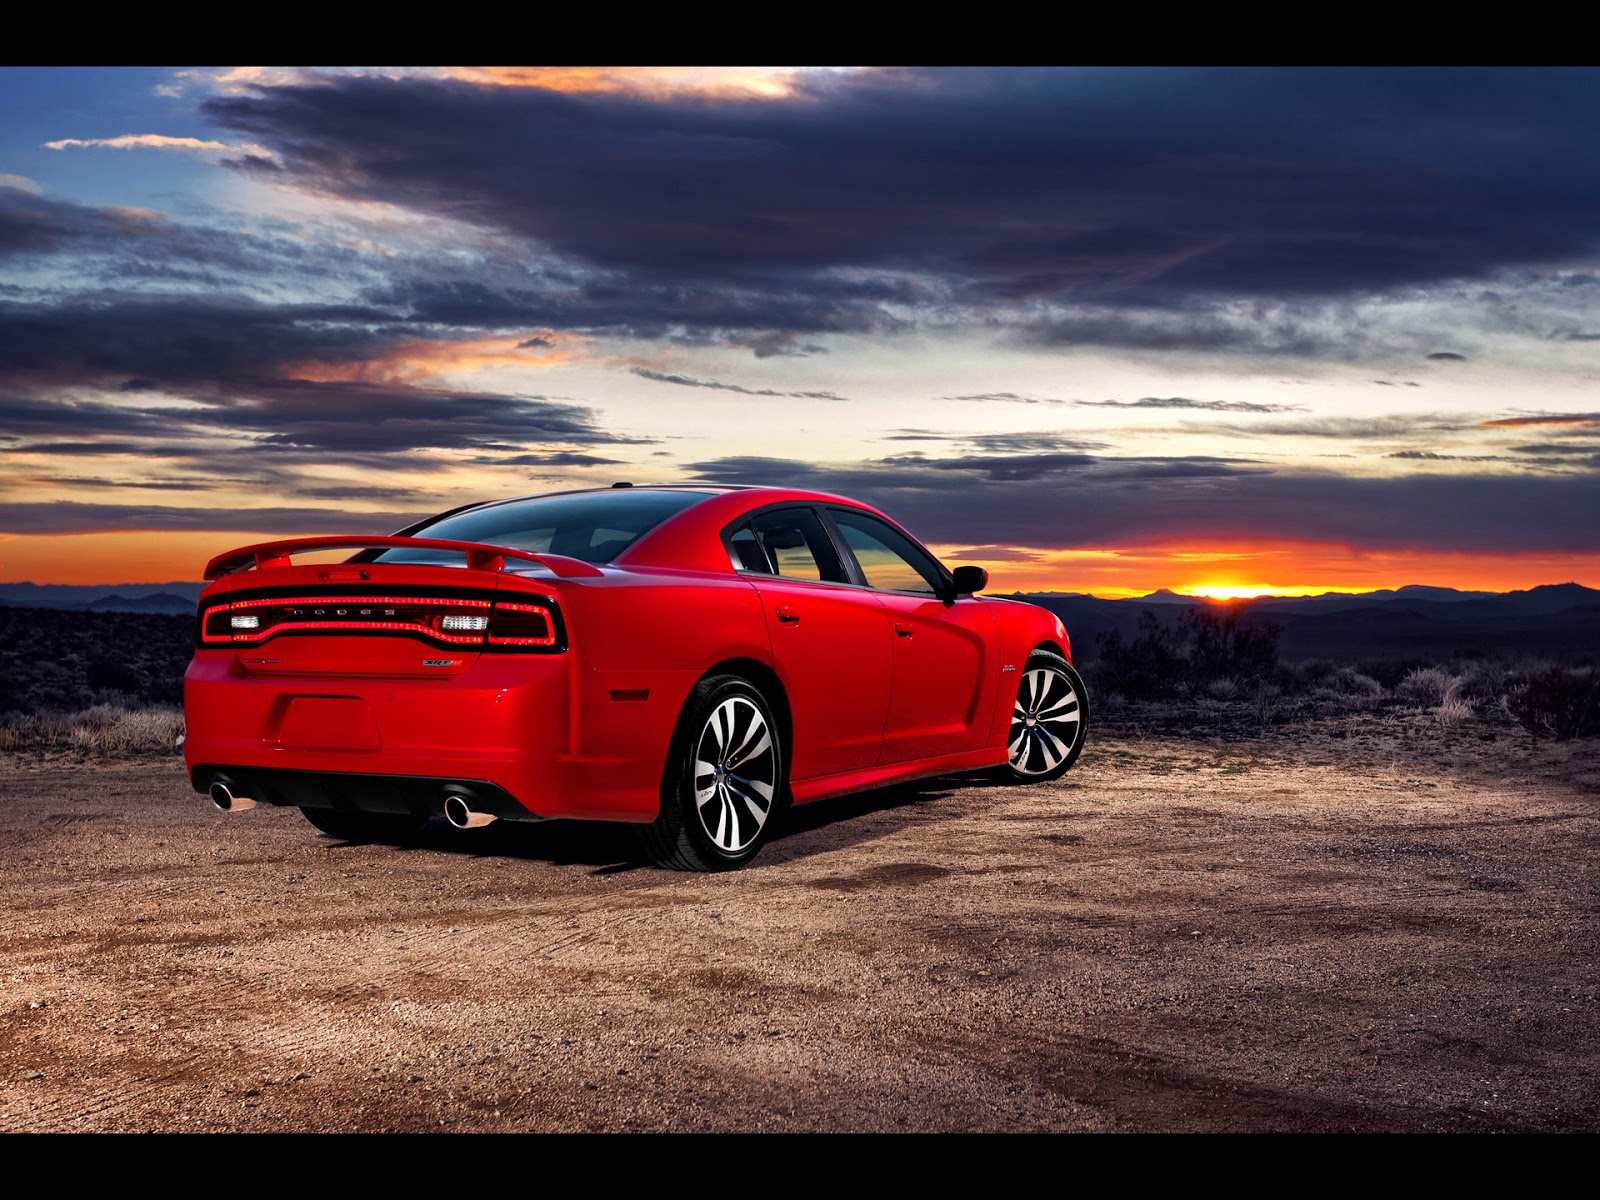 hd wallpapers 2012 dodge charger rt 2 wallpapers. Black Bedroom Furniture Sets. Home Design Ideas